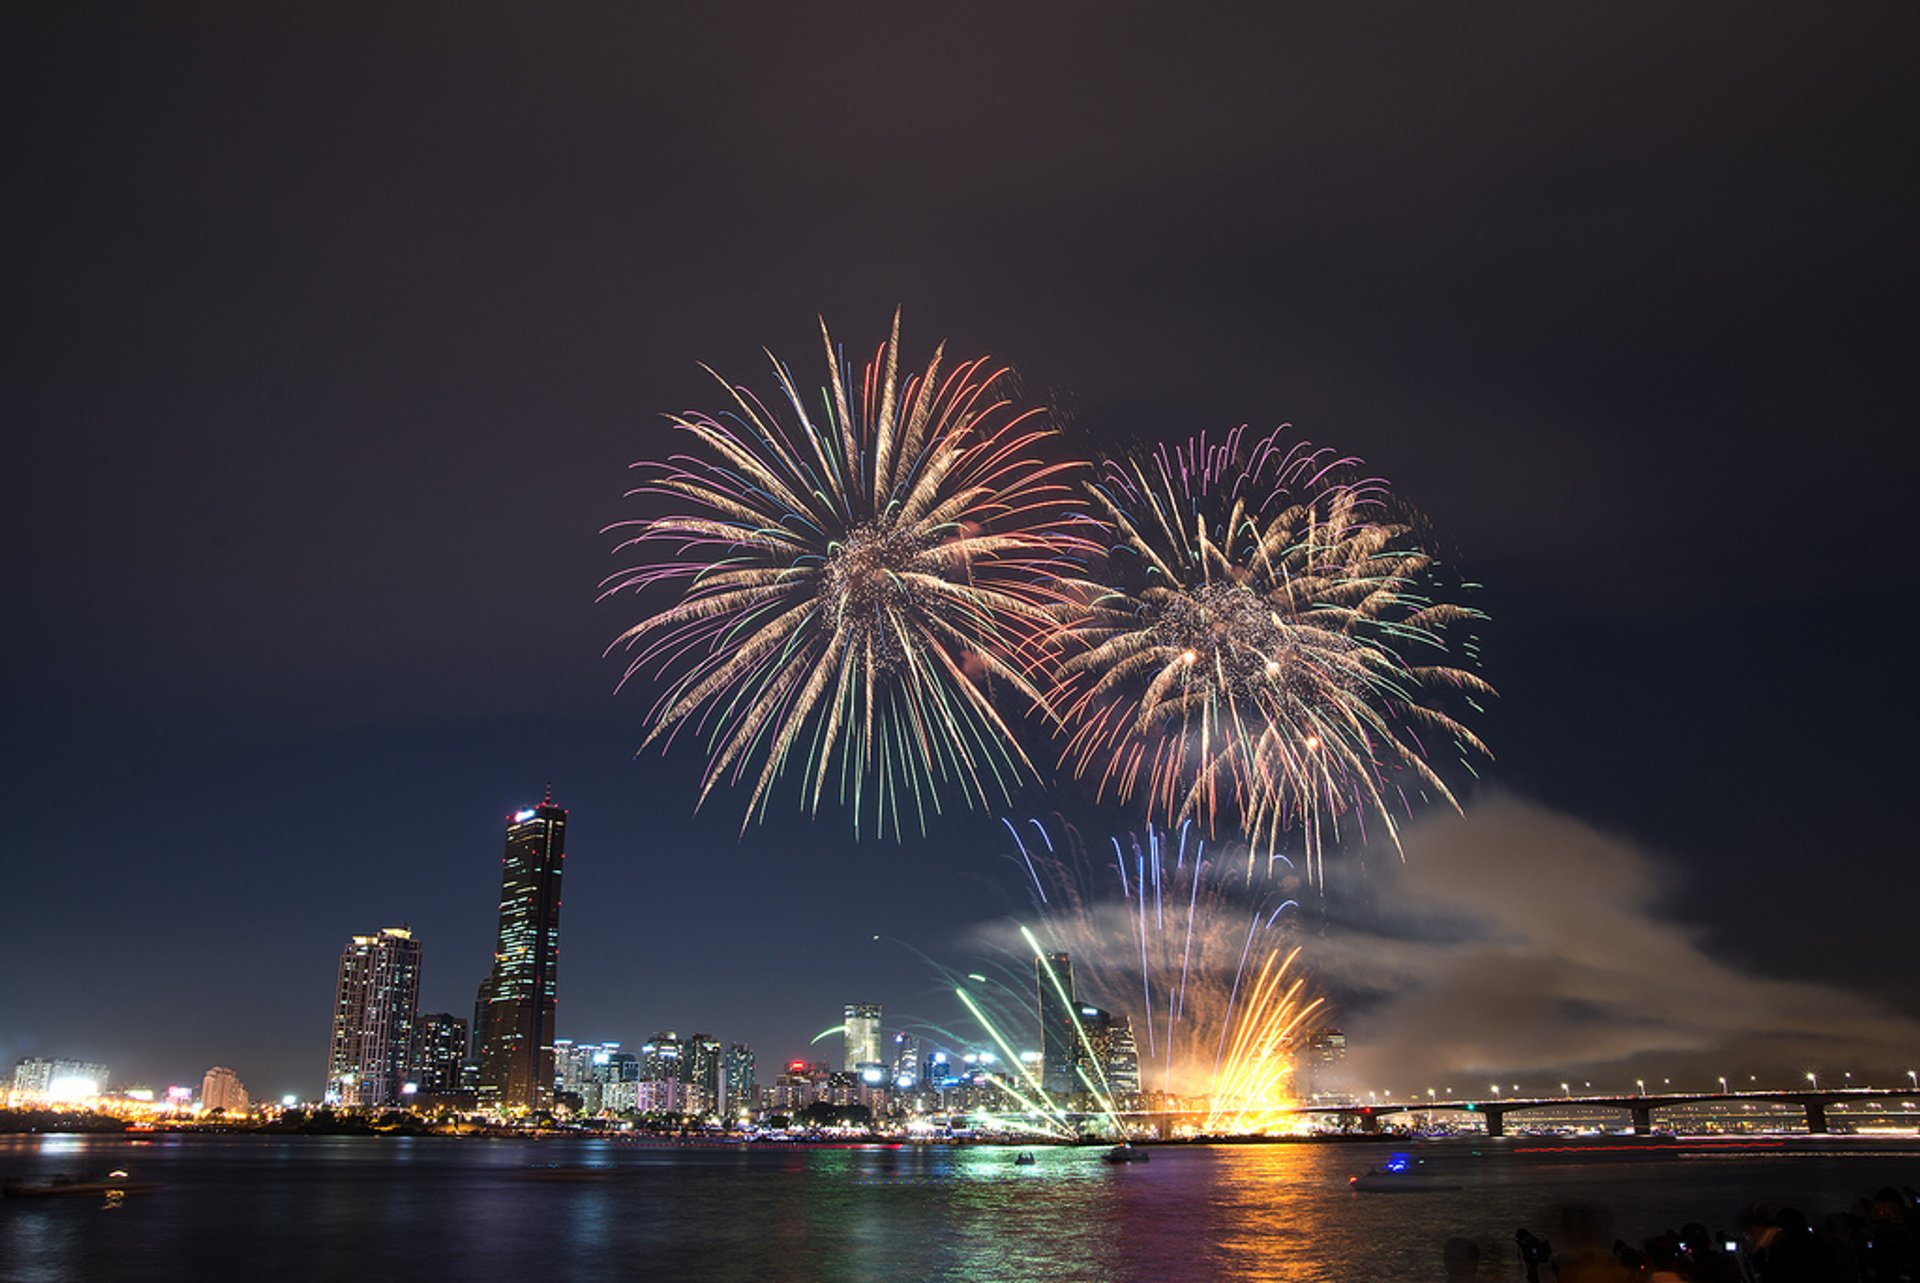 Seoul International Fireworks Festival in Seoul - Best Season 2020